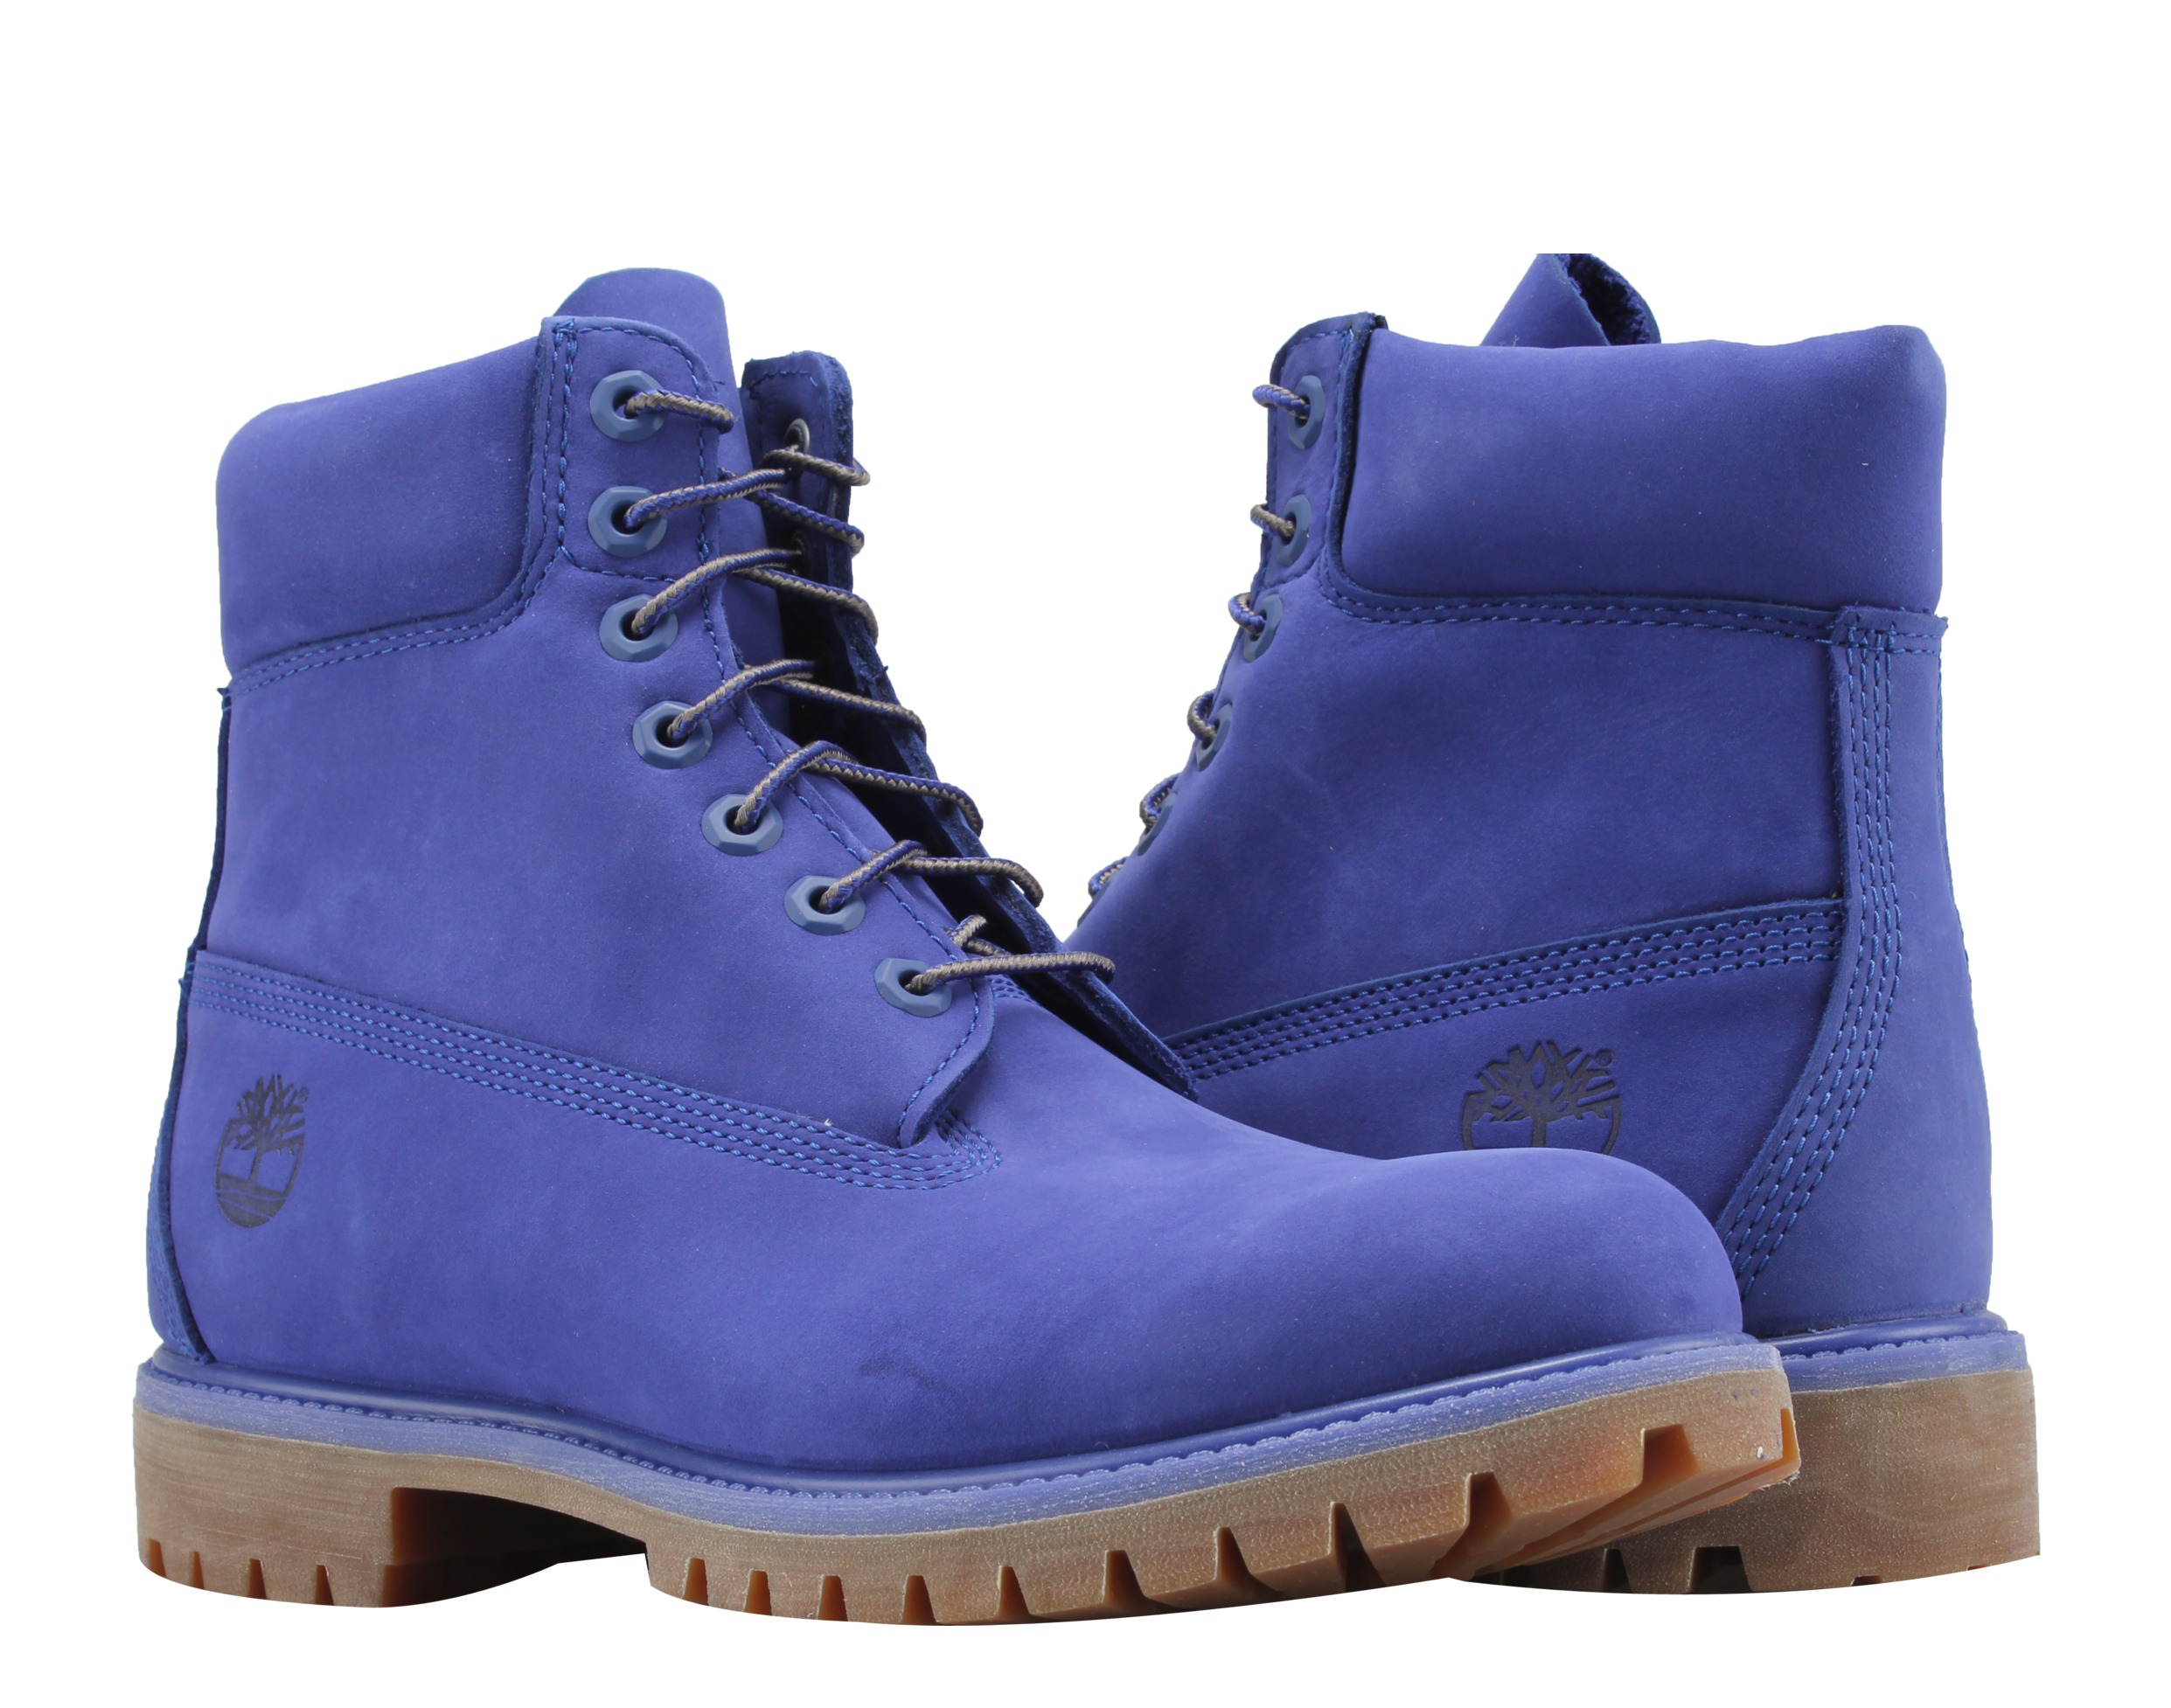 Timberland 6-Inch Premium Waterproof Blue Violet Haze Limited Men's Boots A1P5U by